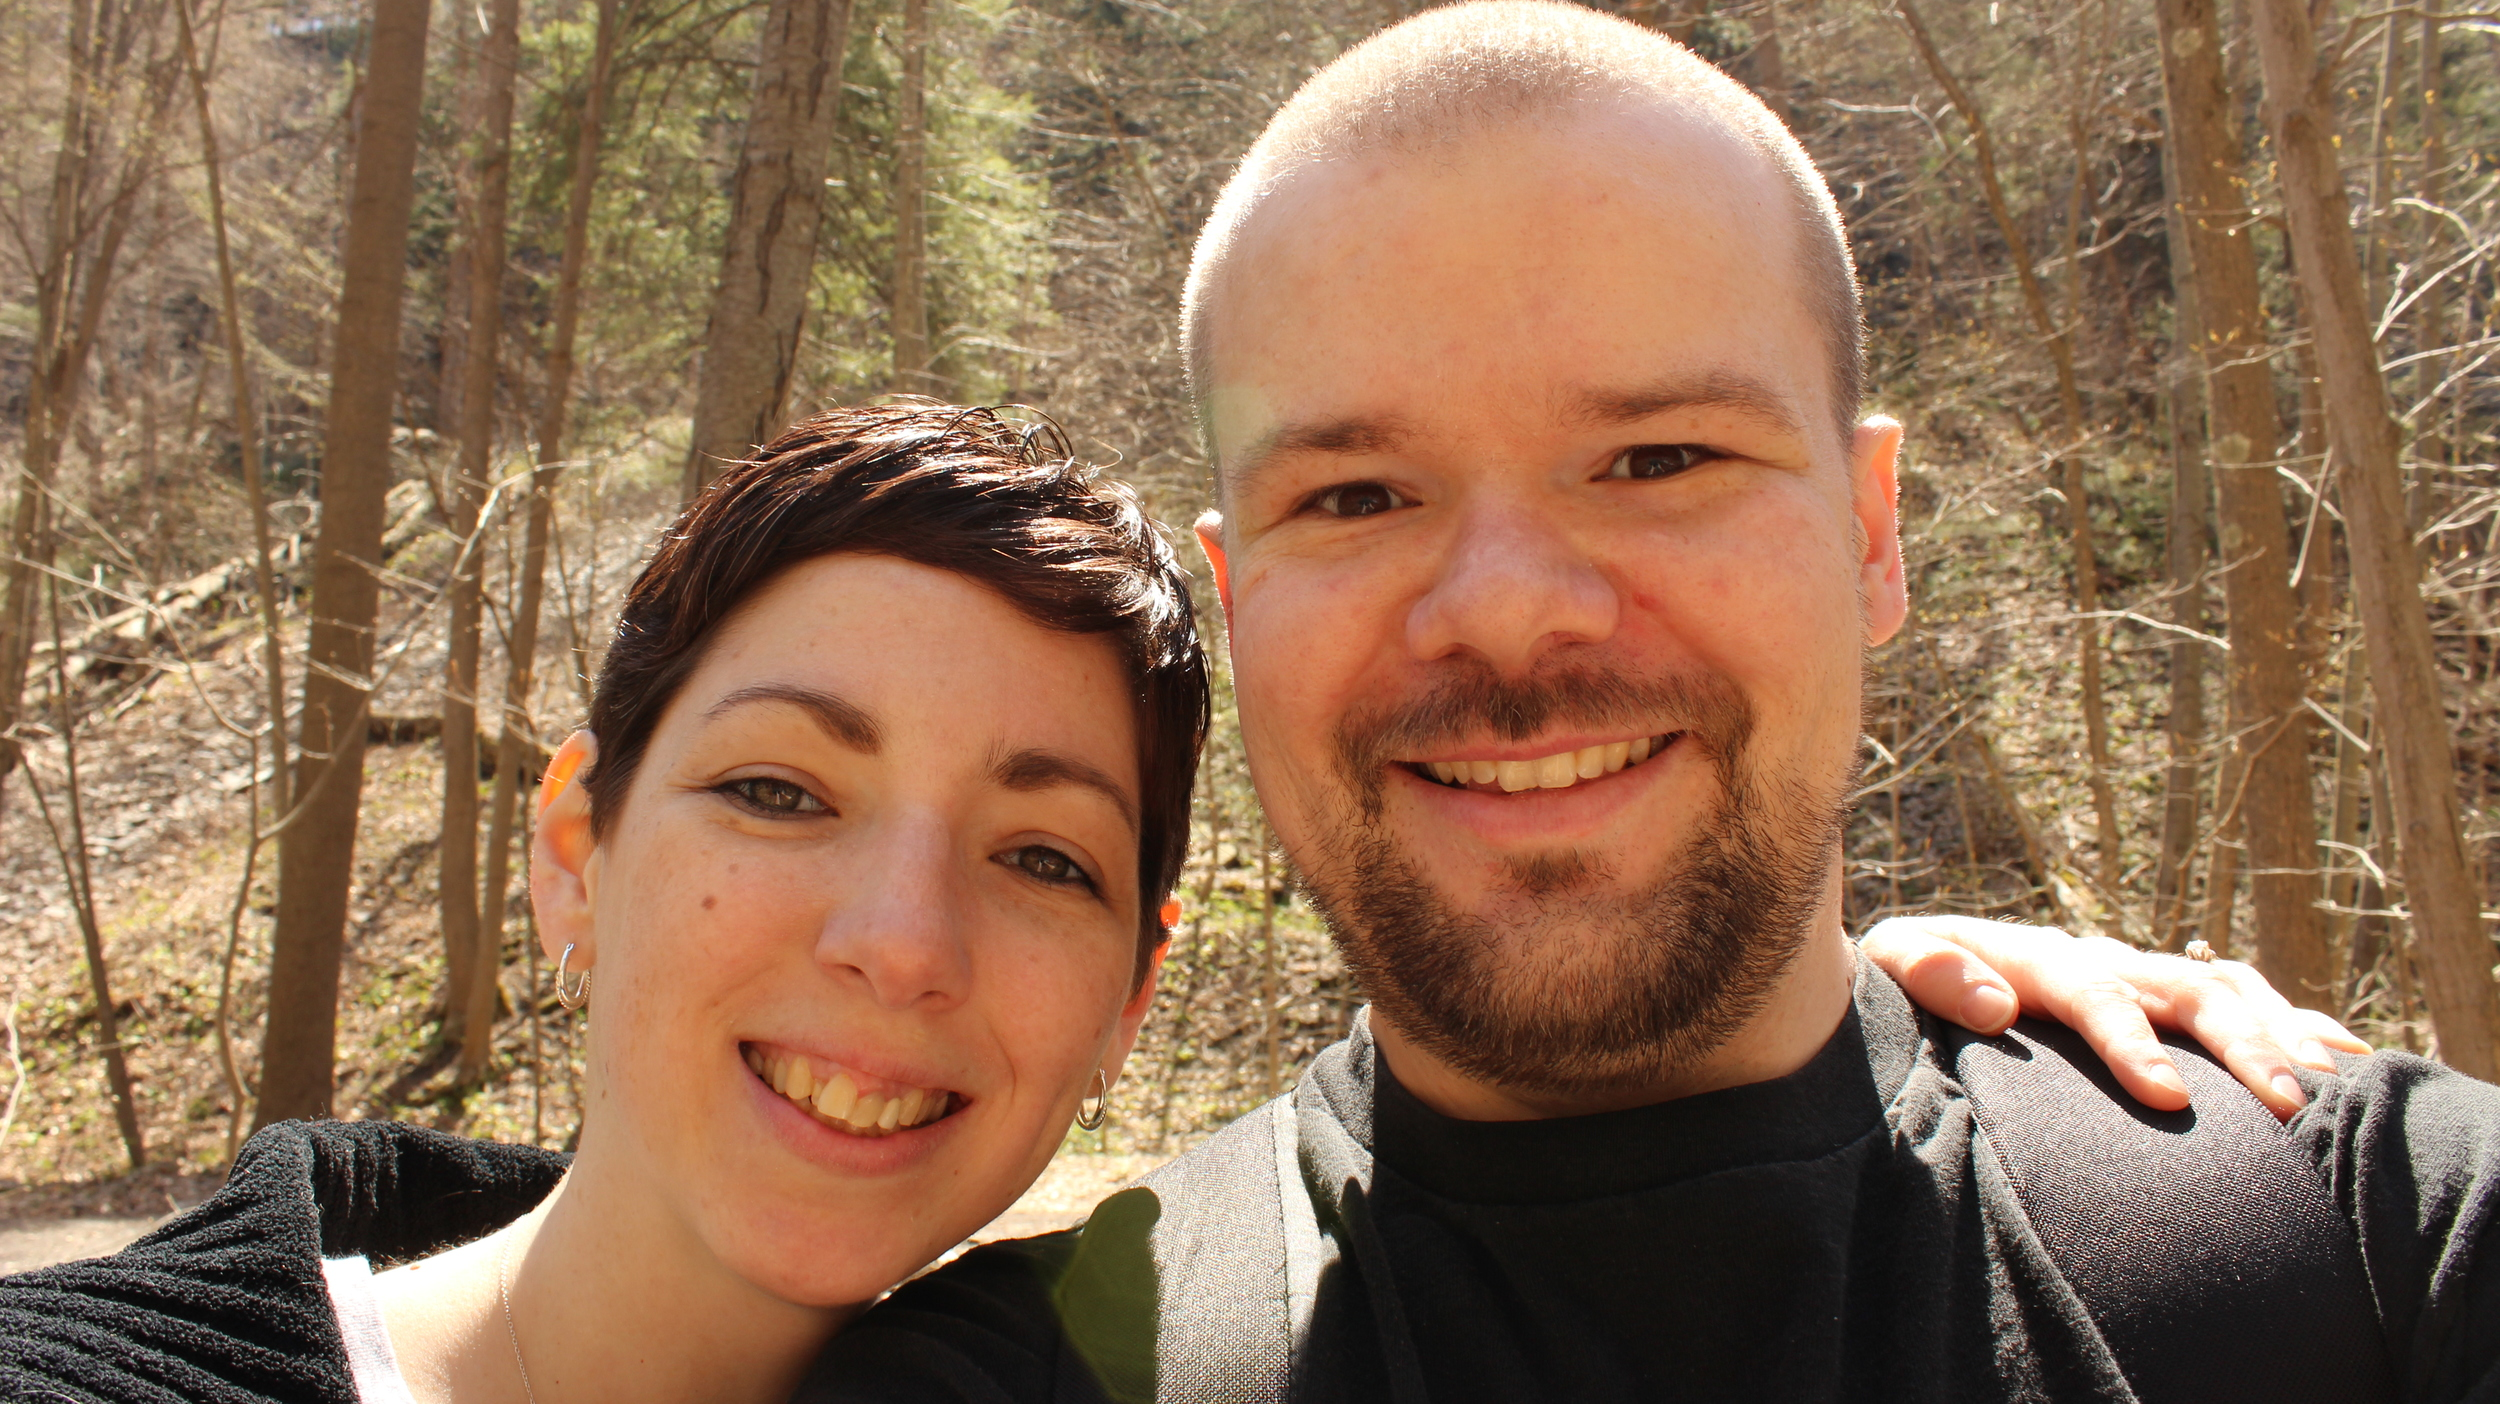 With my husband, Rich, in Ithaca, NY on our 11th wedding anniversary.